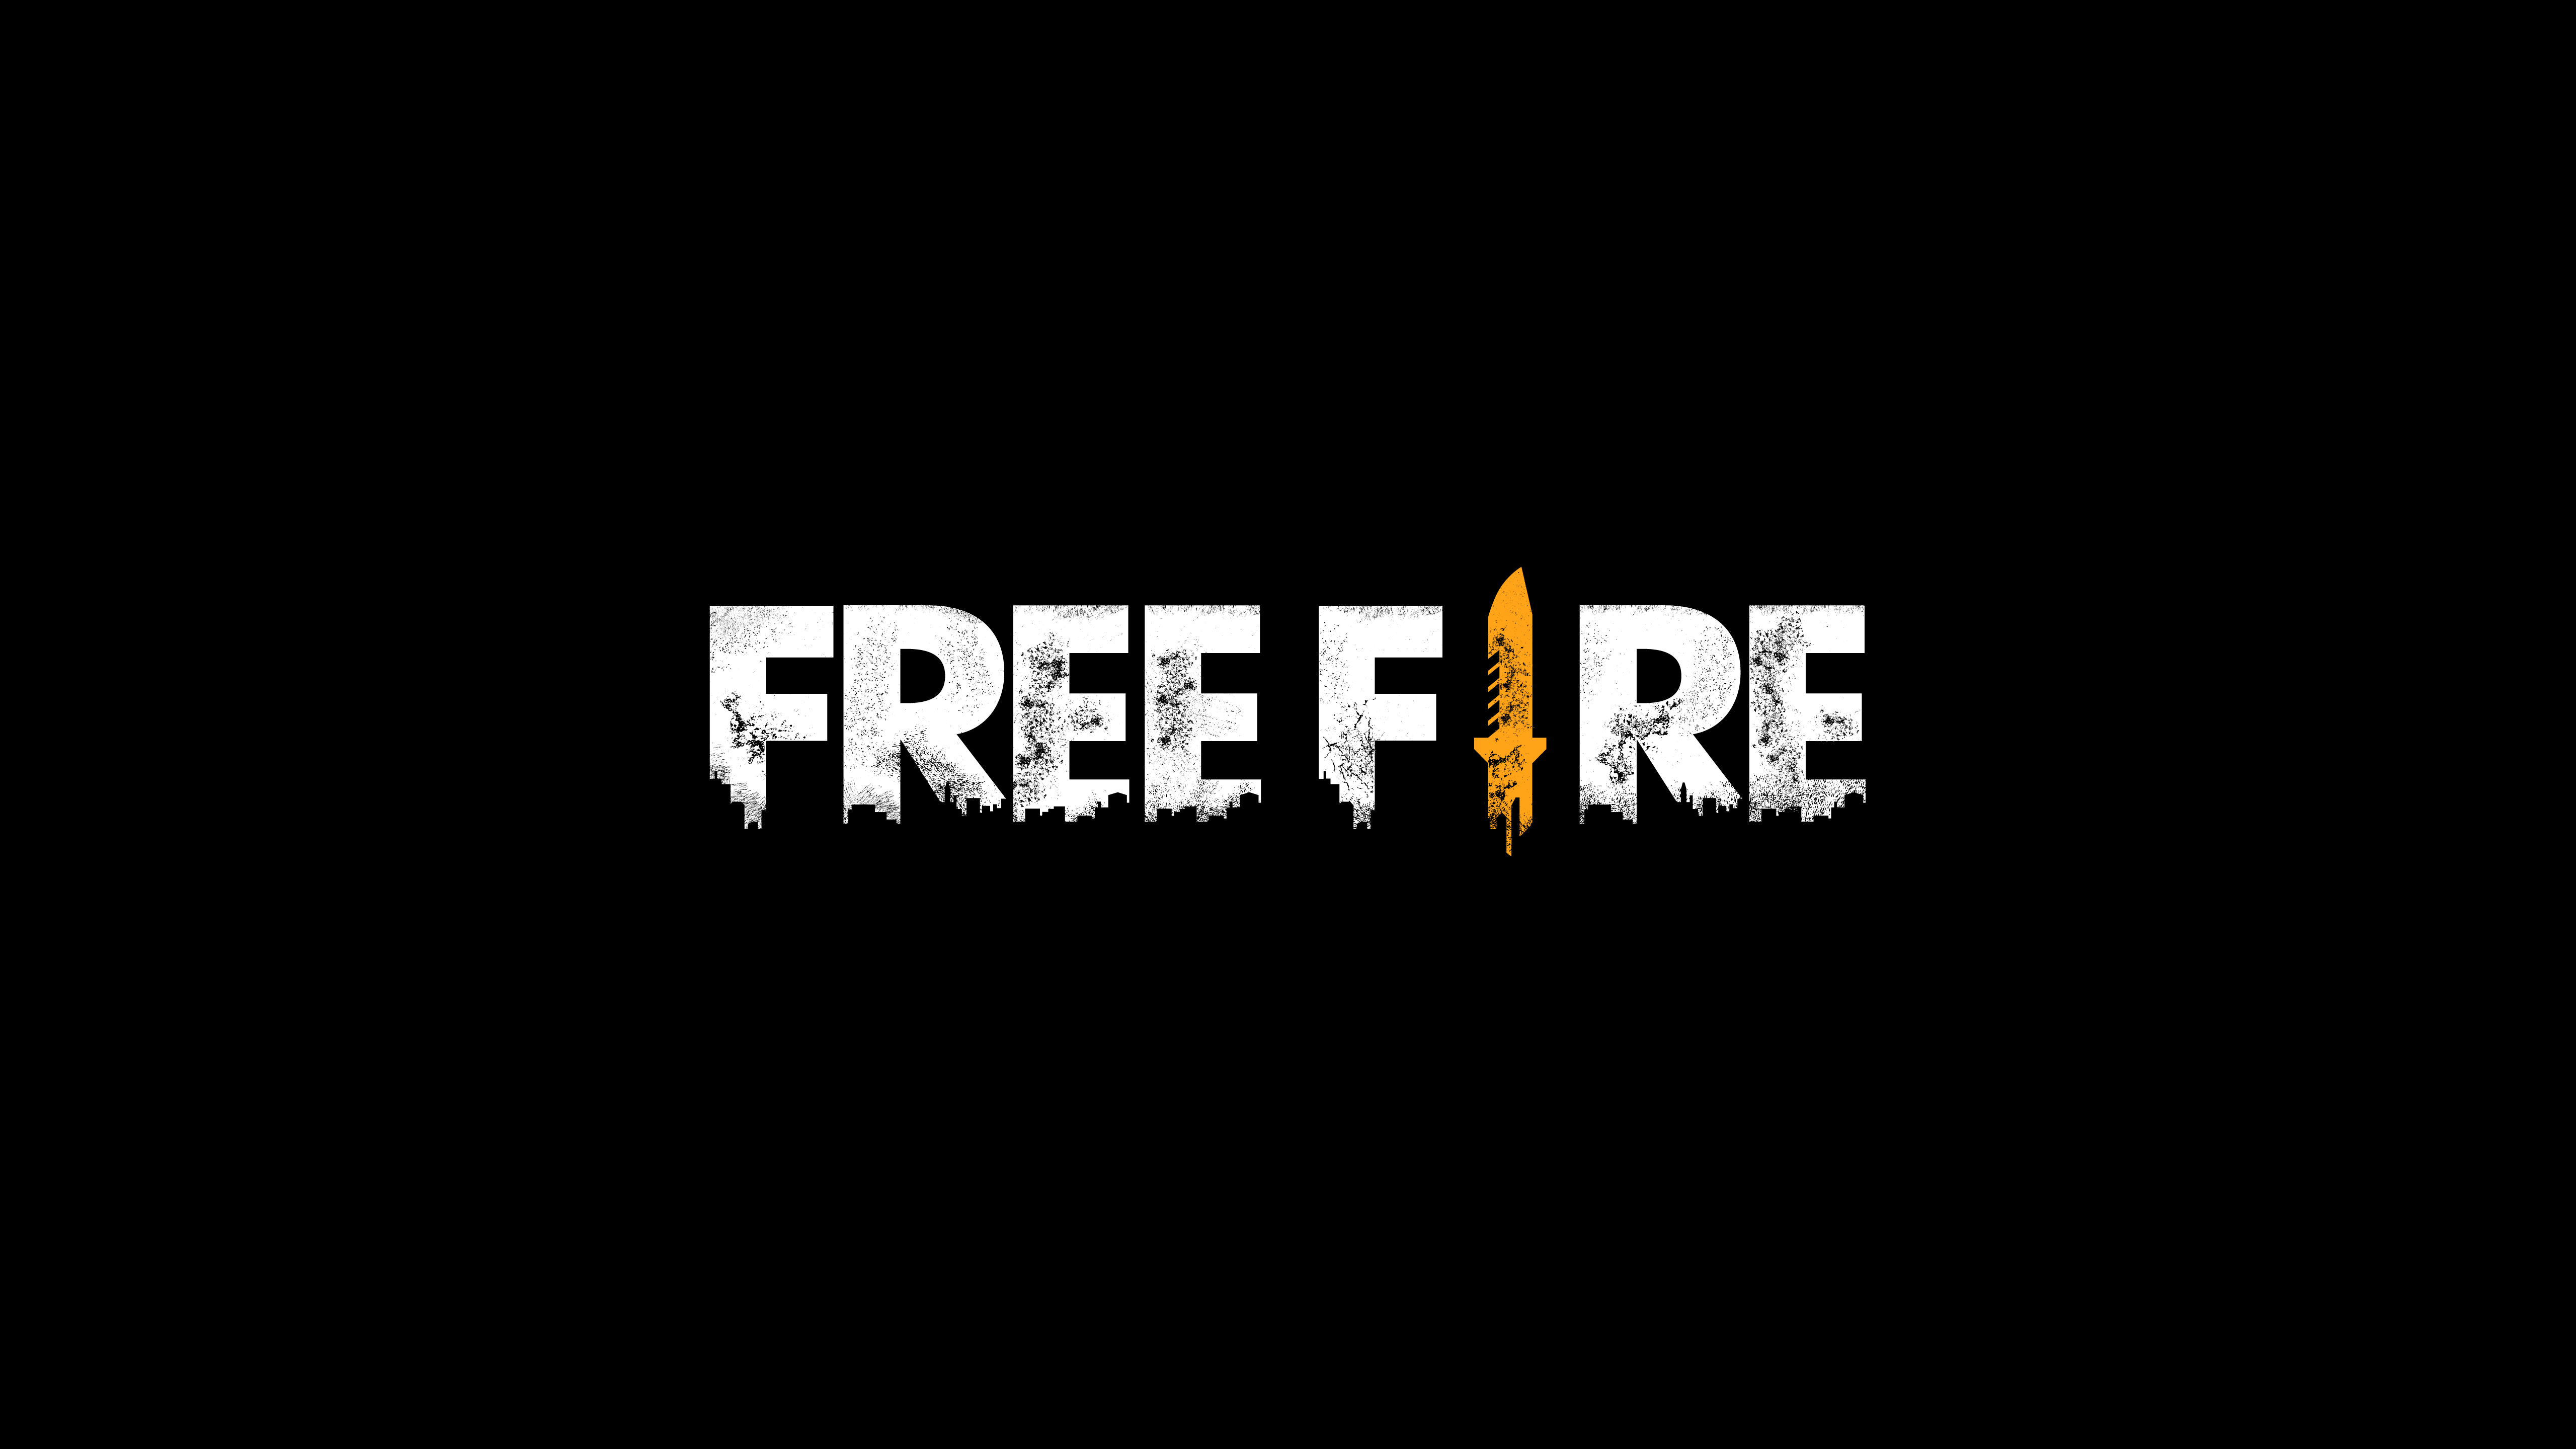 Free Fire Logo Wallpaper 5k Ultra Hd Id3537